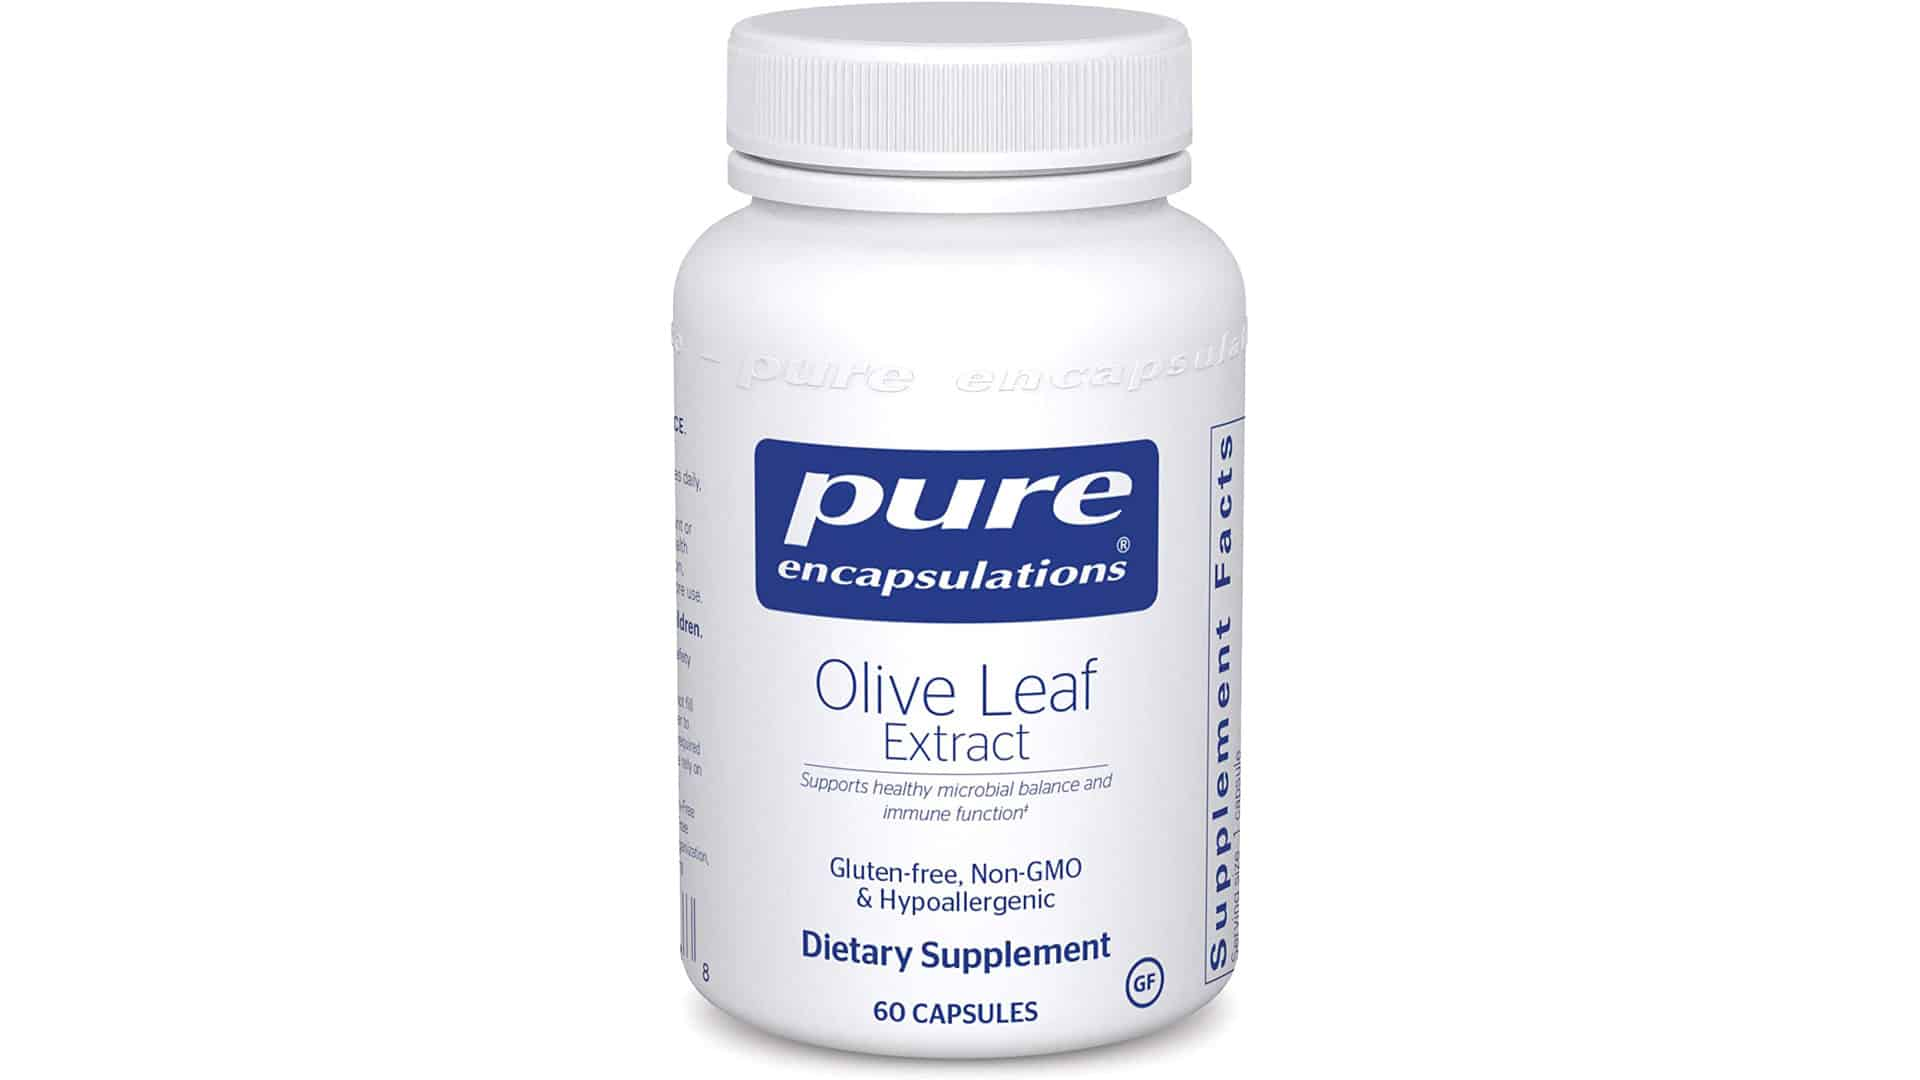 Pure Encapsulations Olive Leaf Extract